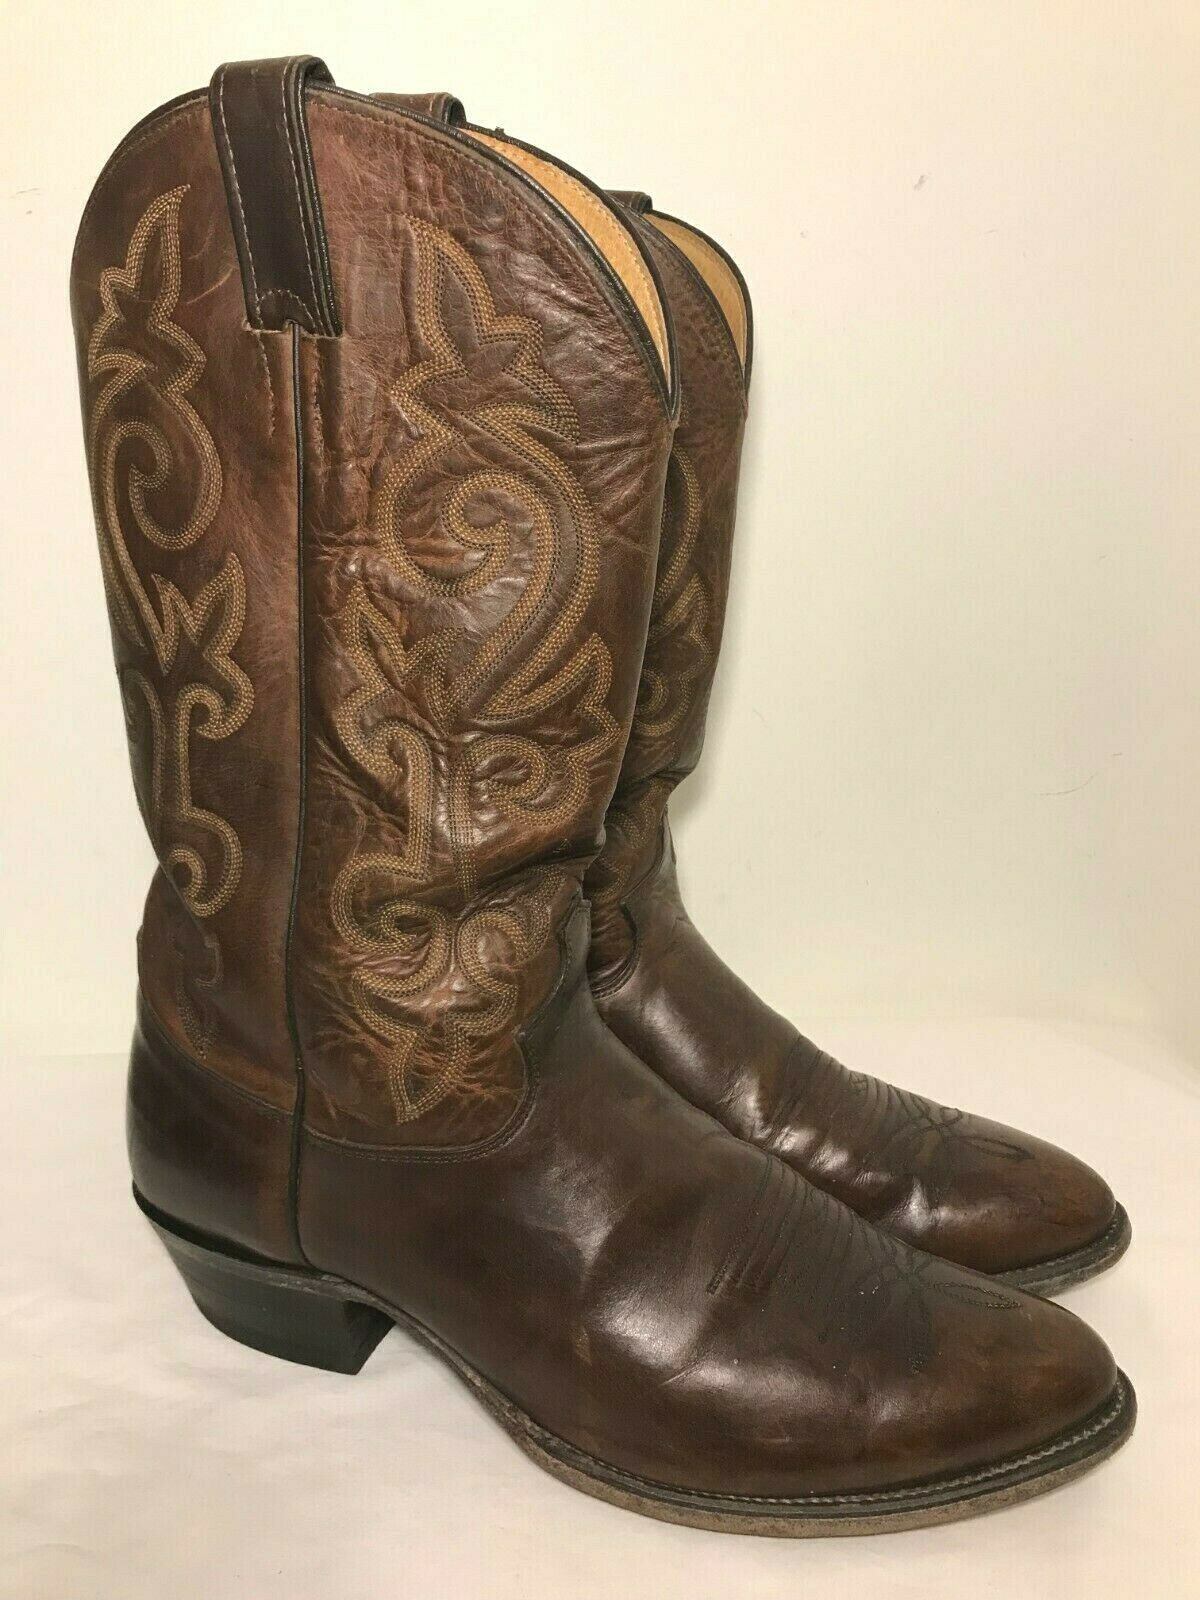 JUSTIN 2253 Bay Apache Boots Mens Size 12 D Brown Oiled Leather Cowboy Western